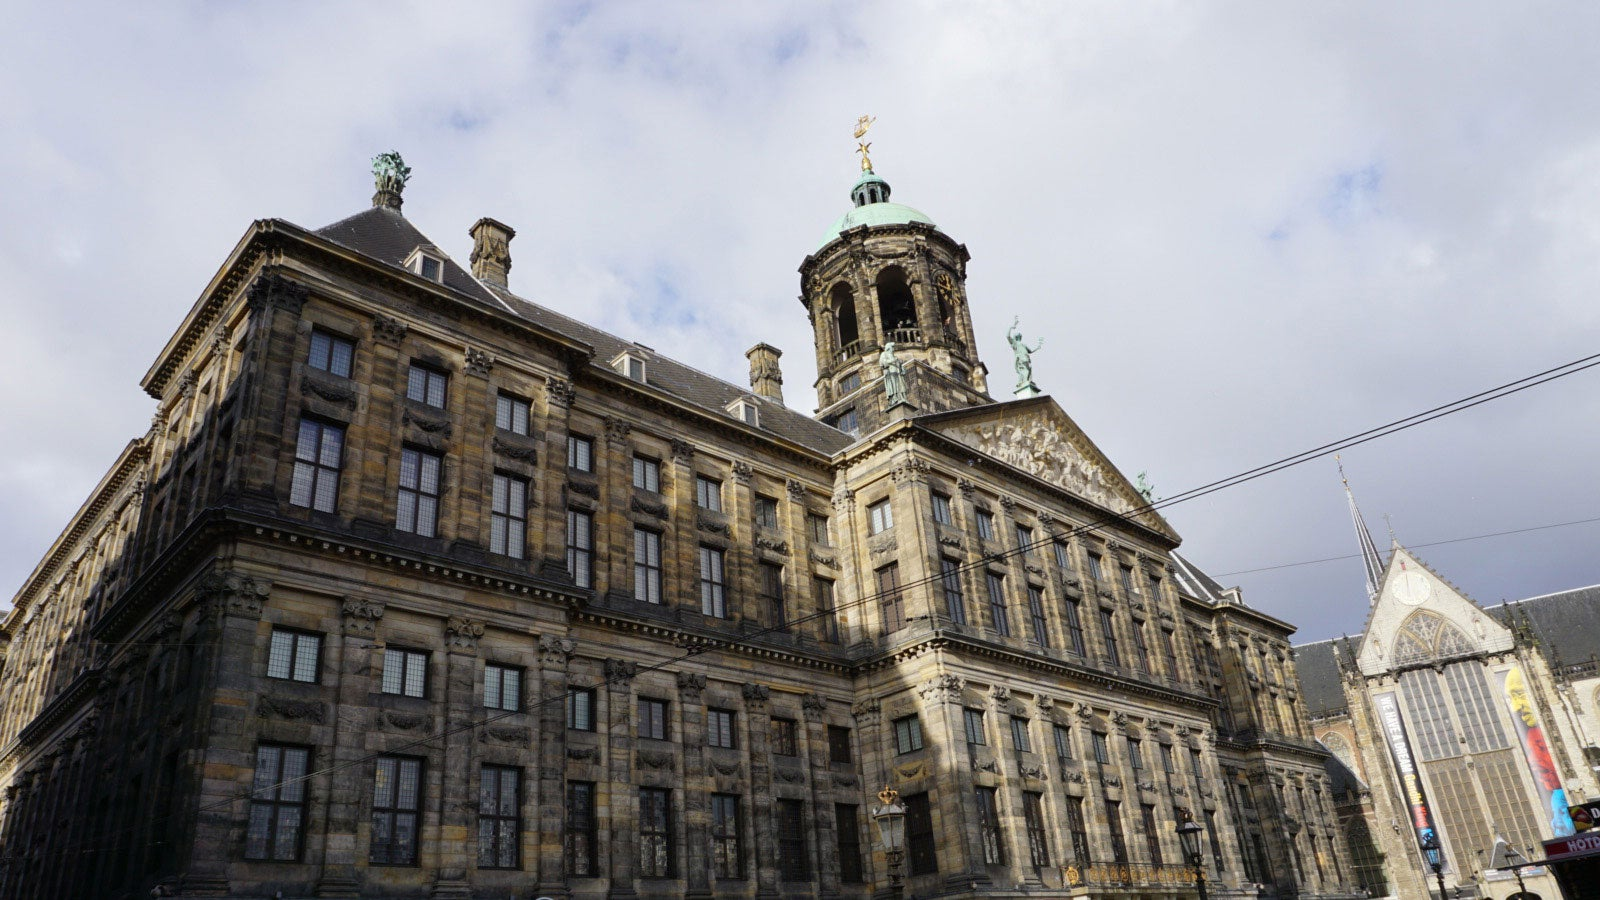 A zoomed out image showing the full exterior of The Stadhuis